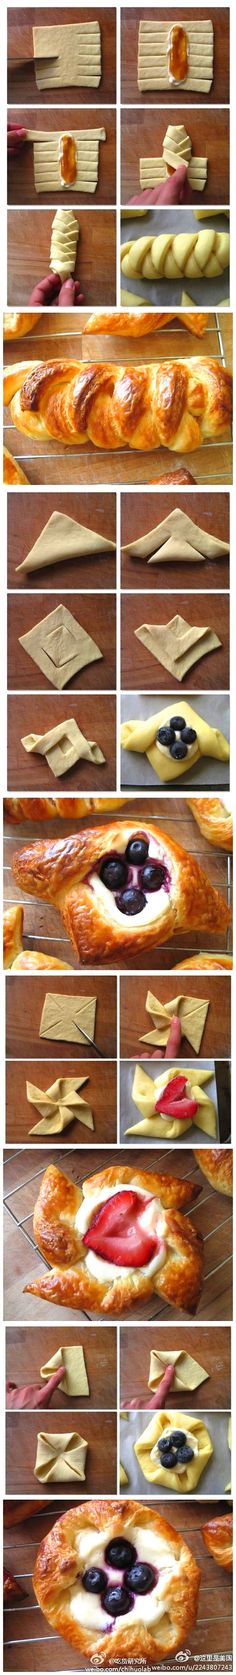 cool-pastry-folding-ideas-recipe